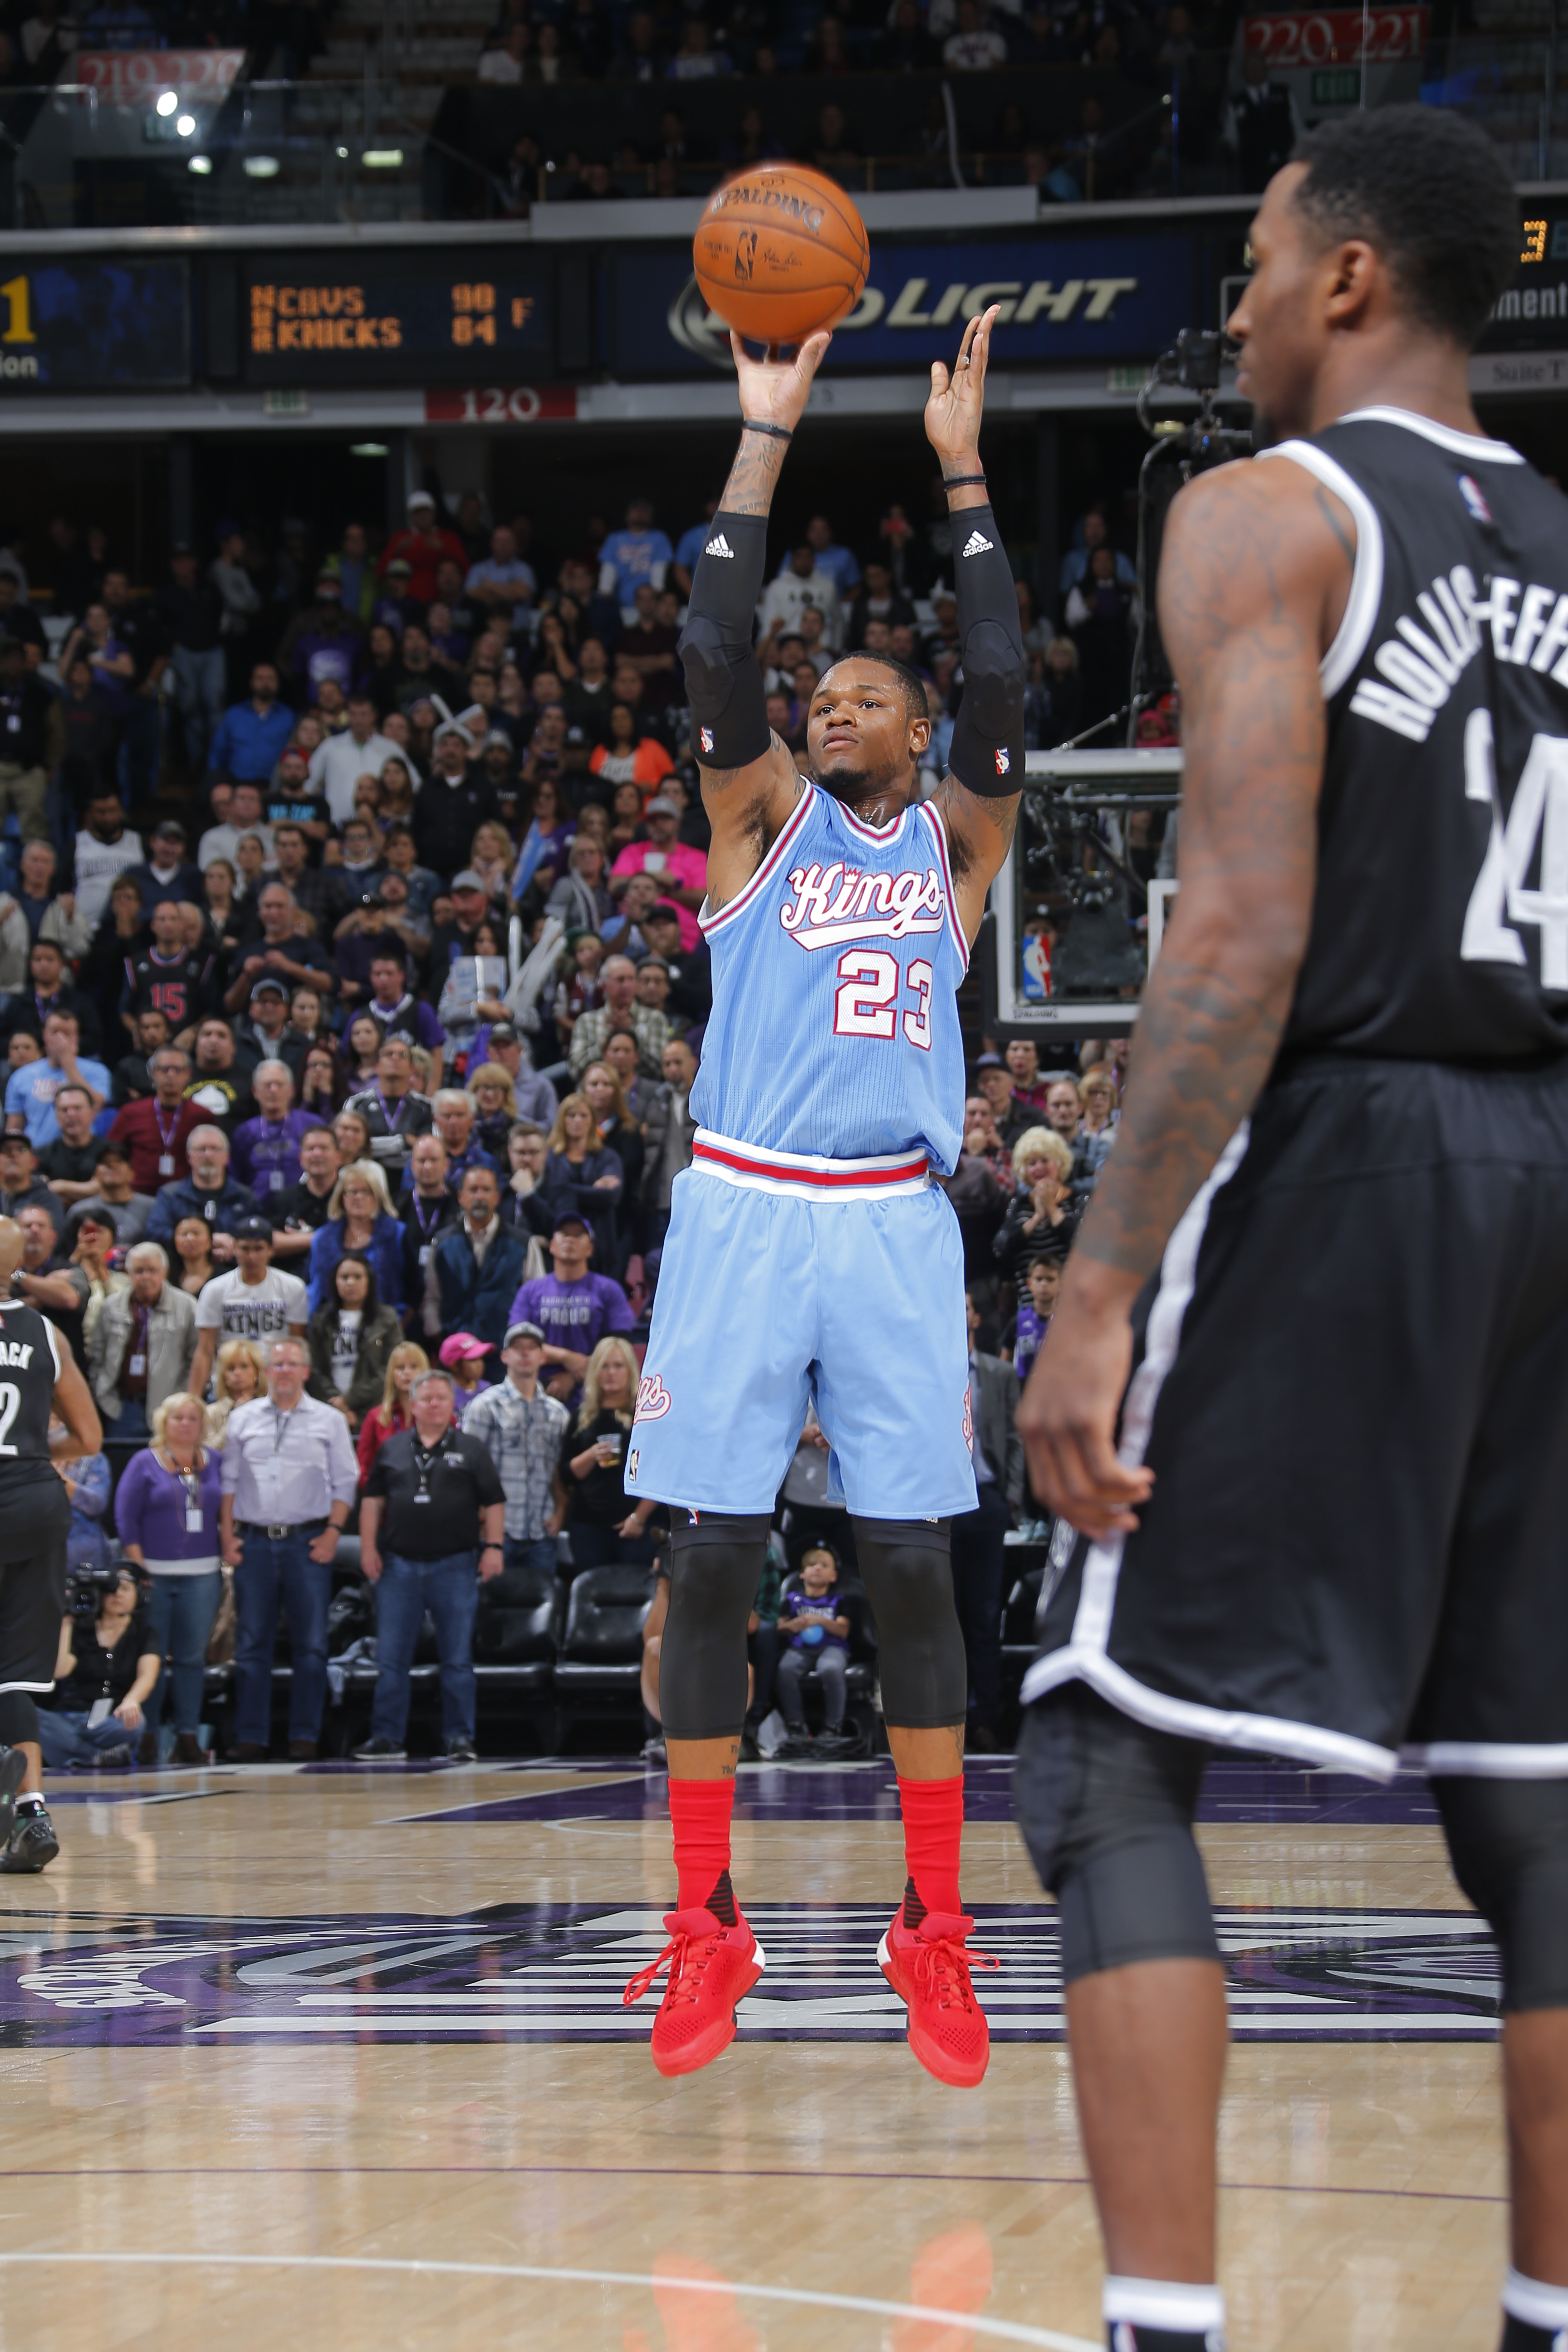 SACRAMENTO, CA - NOVEMBER 13:  Ben McLemore #23 of the Sacramento Kings shoots against the Brooklyn Nets on November 13, 2015 at Sleep Train Arena in Sacramento, California. (Photo by Rocky Widner/NBAE via Getty Images)